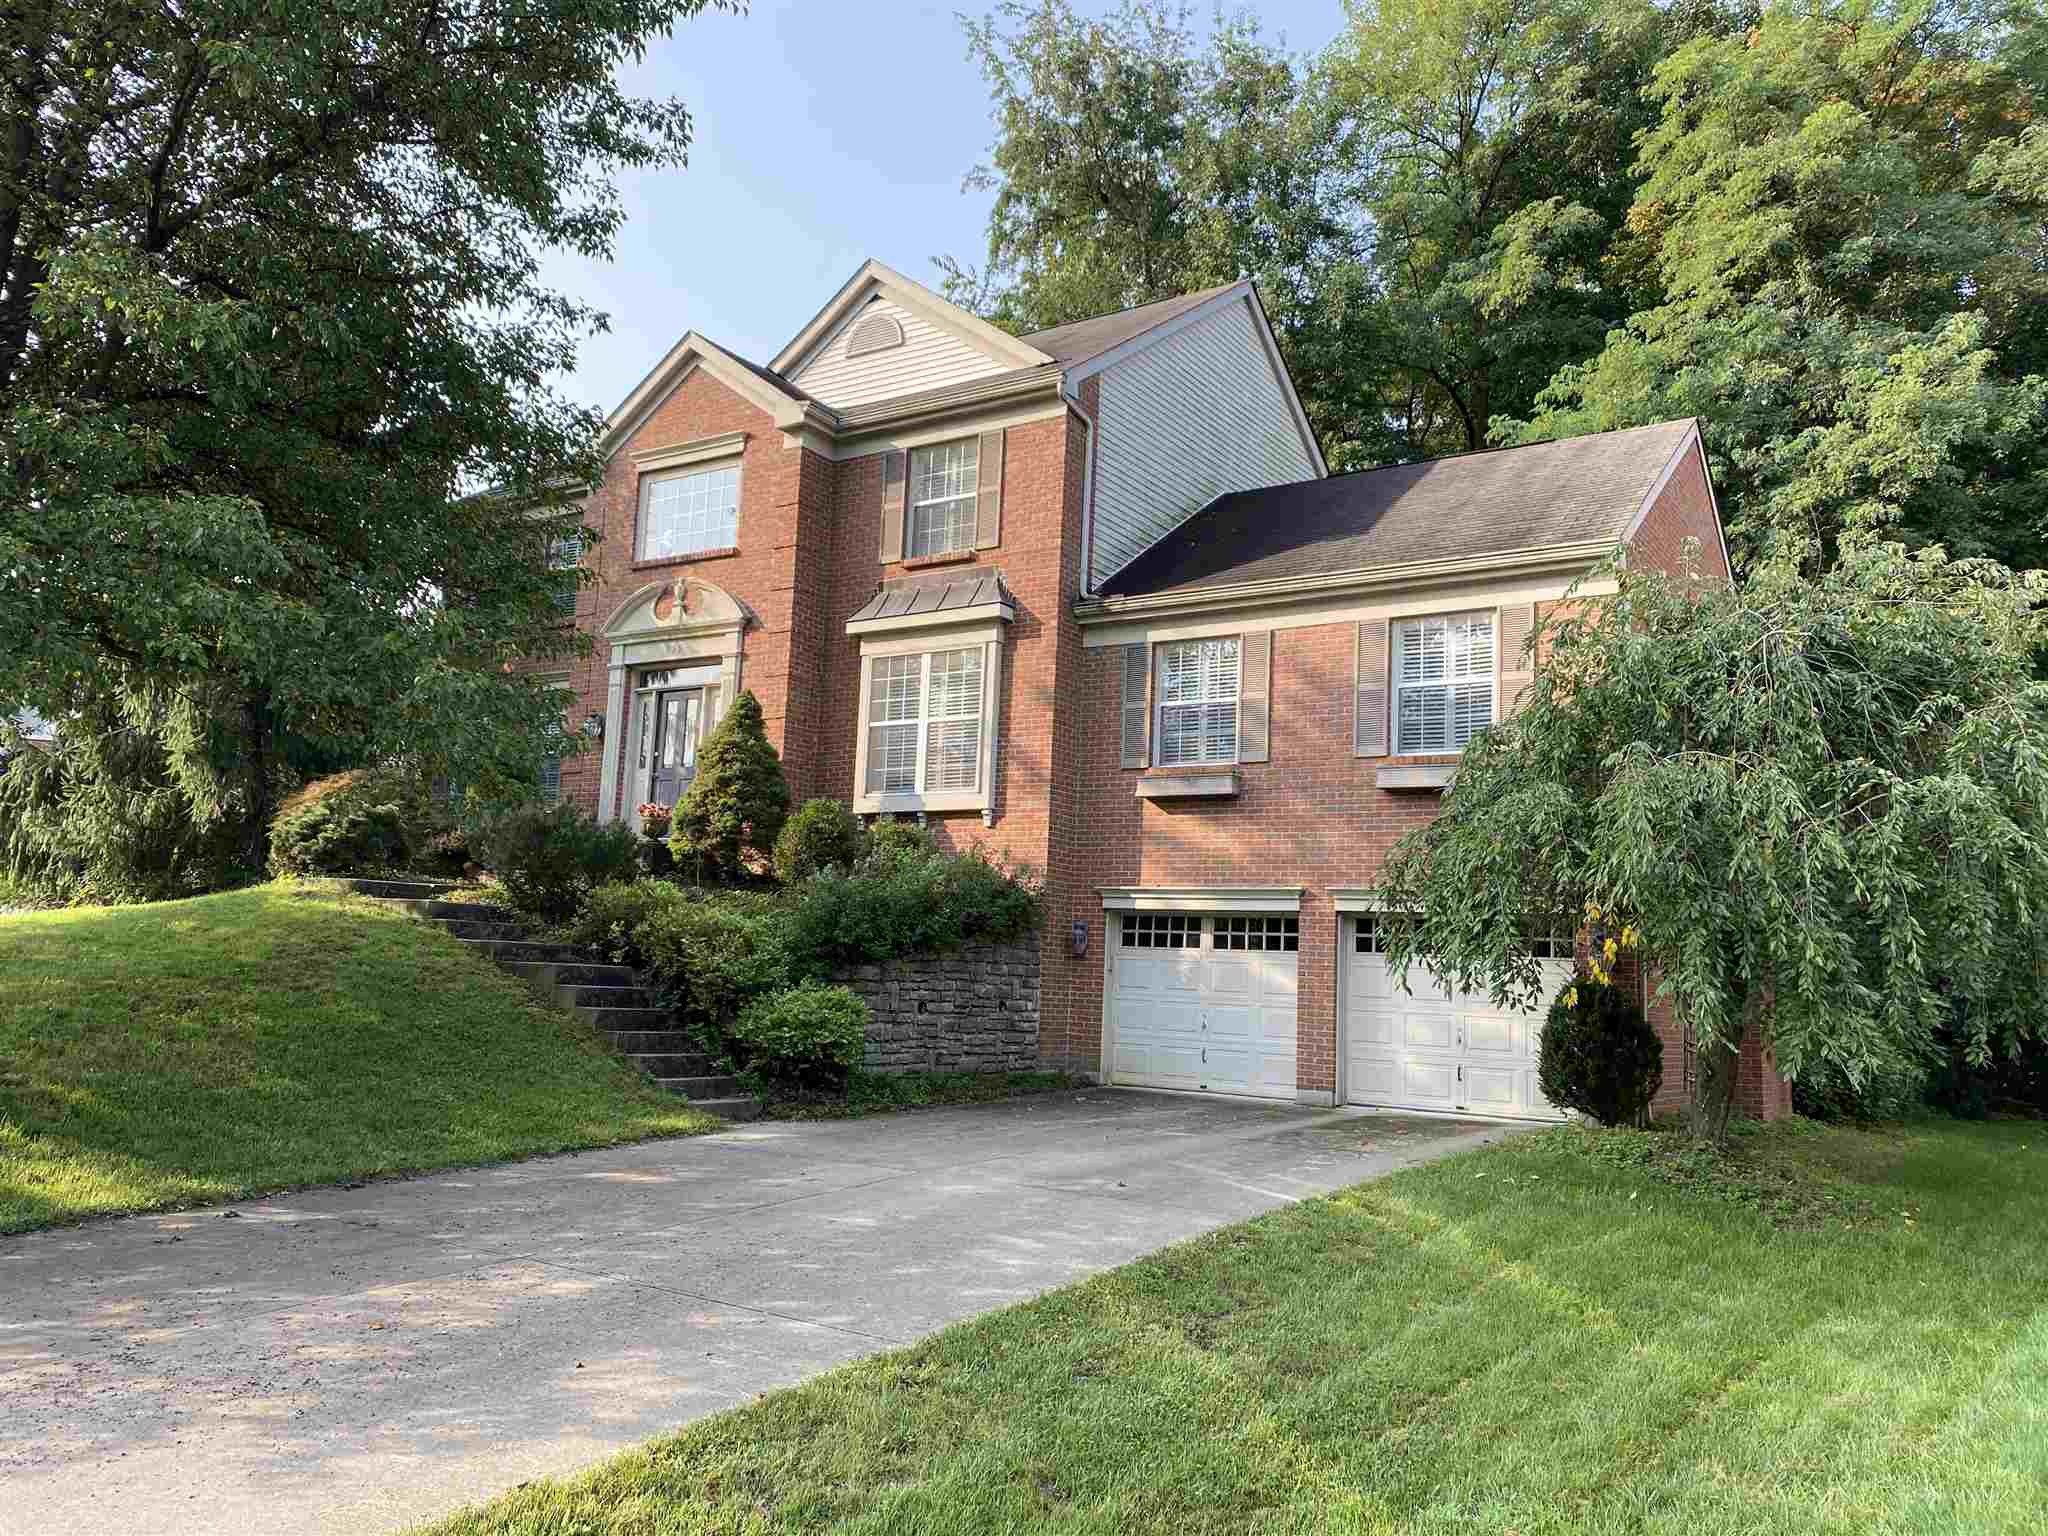 Photo 1 for 938 Riverwatch Dr Crescent Springs, KY 41017